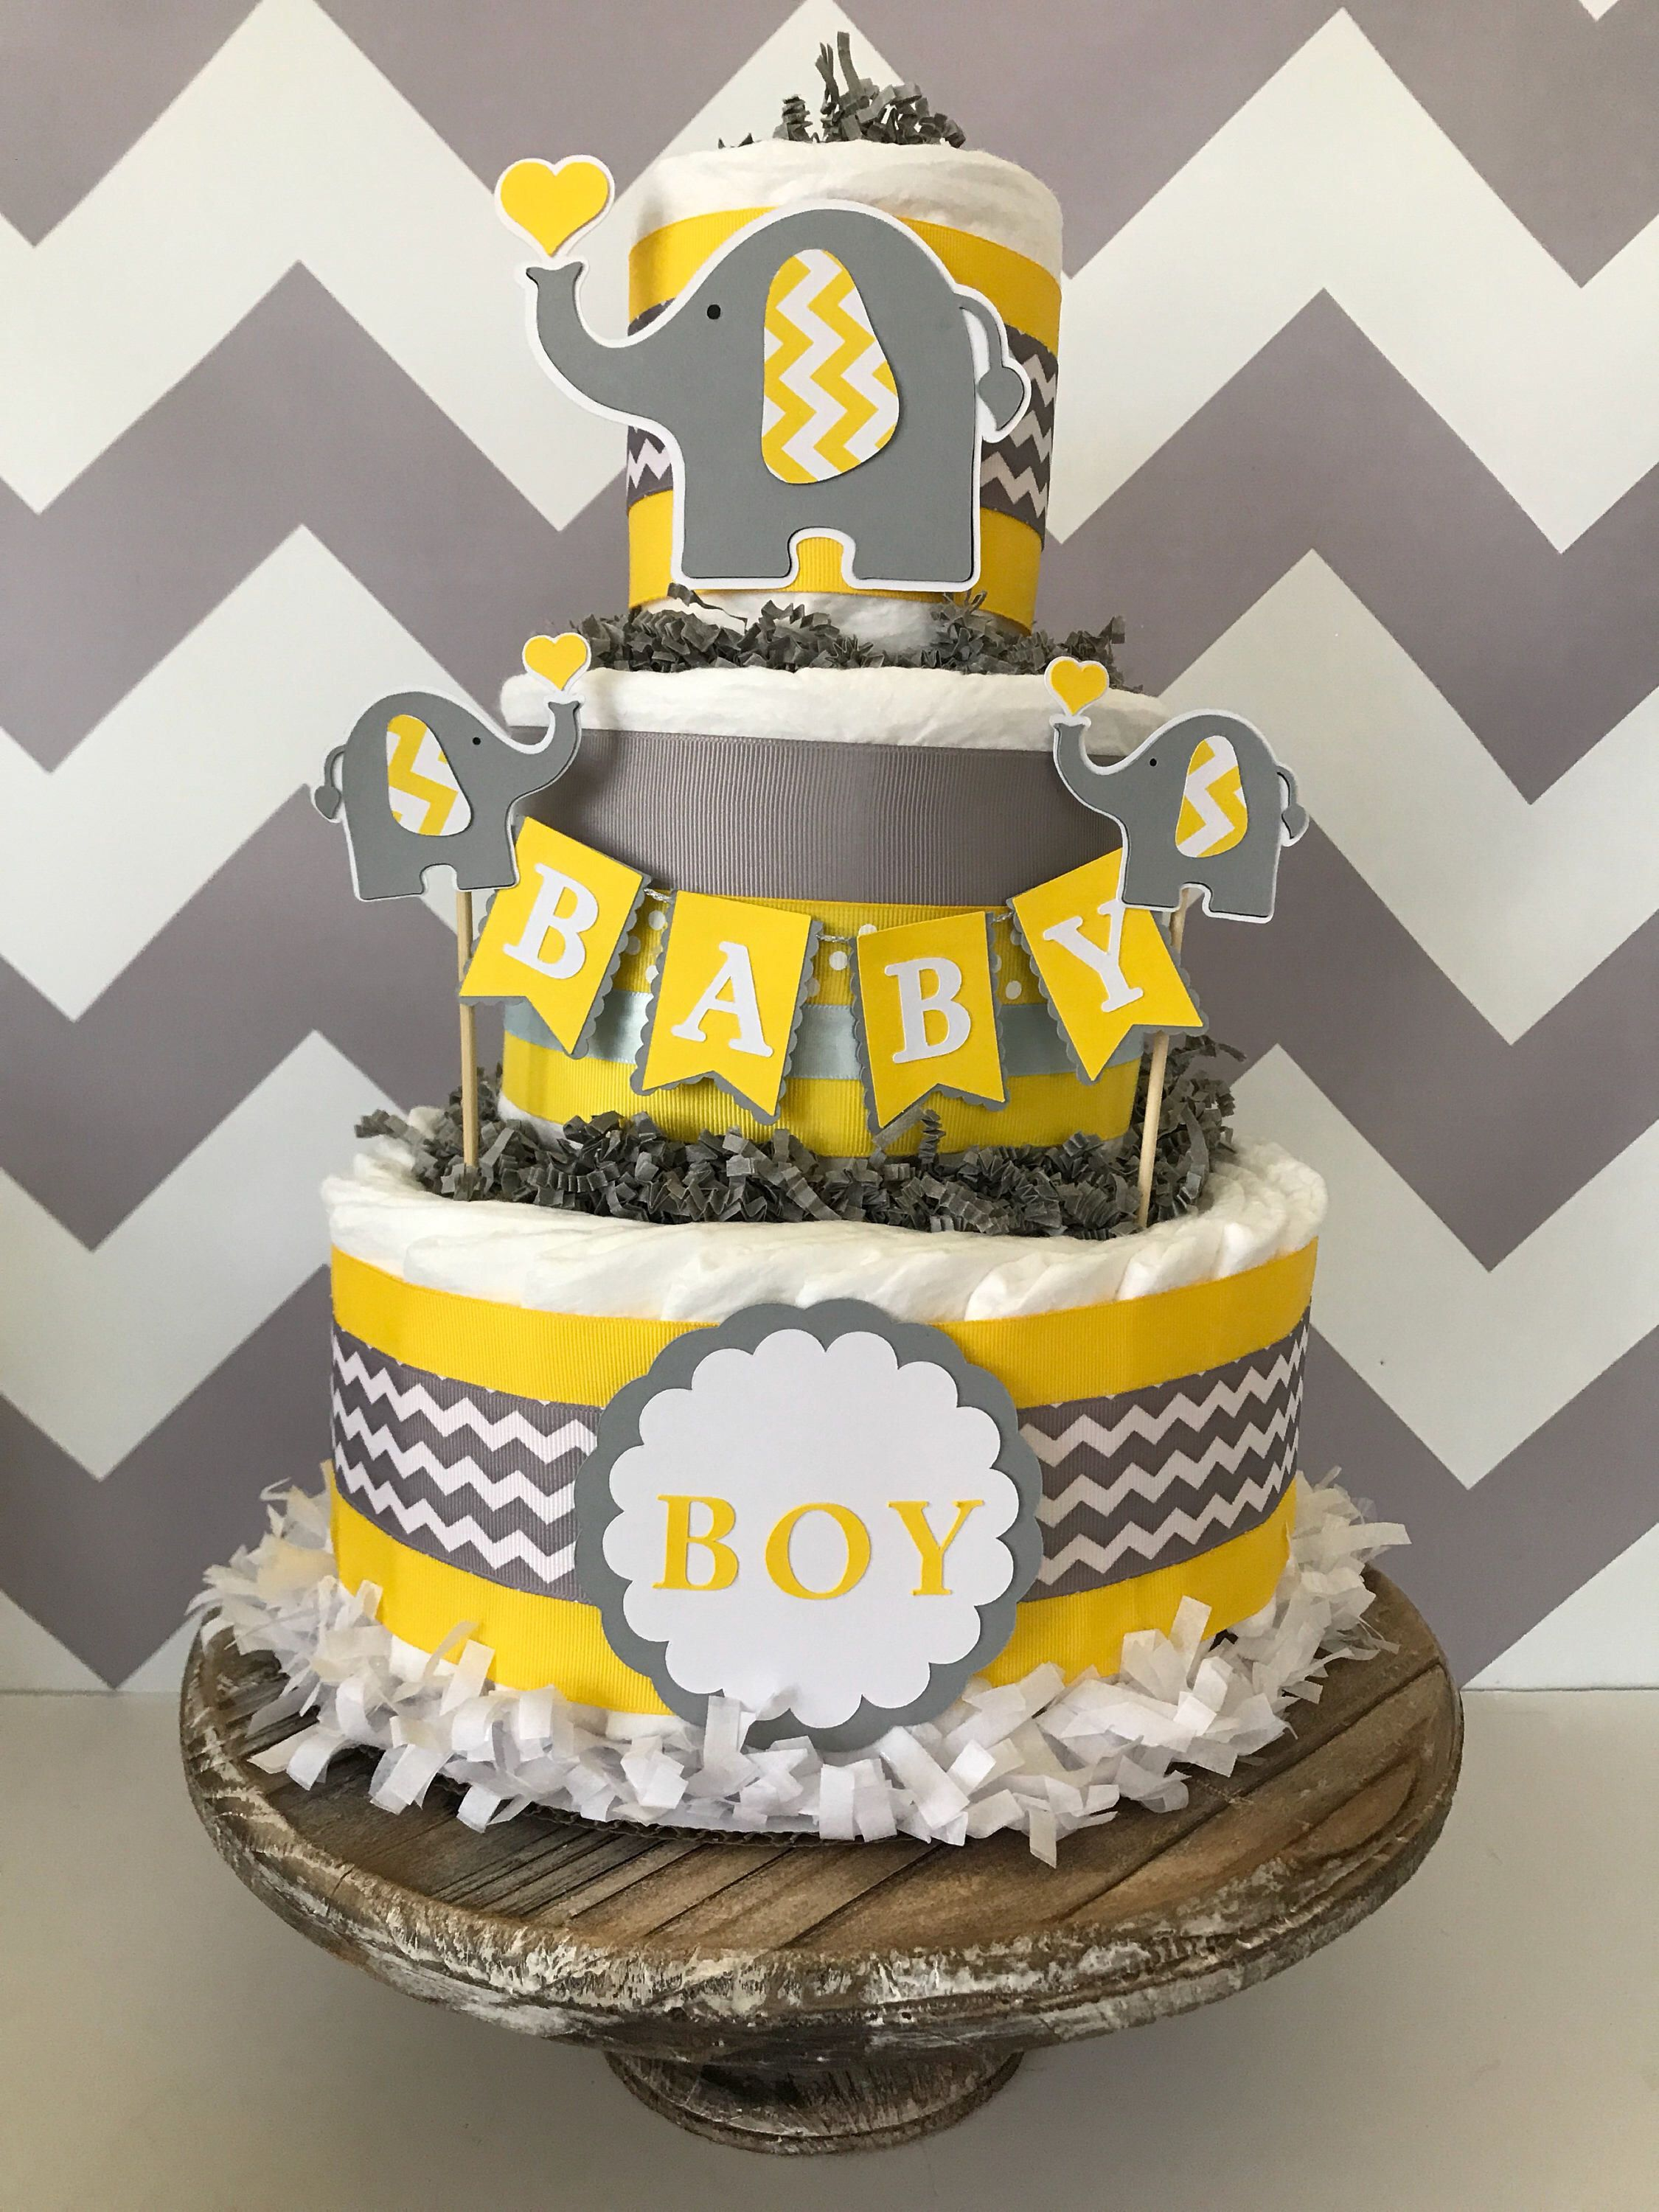 Exceptional Elephant Diaper Cake In Yellow, Gray And White, Elephant Baby Shower  Centerpiece, Elephant